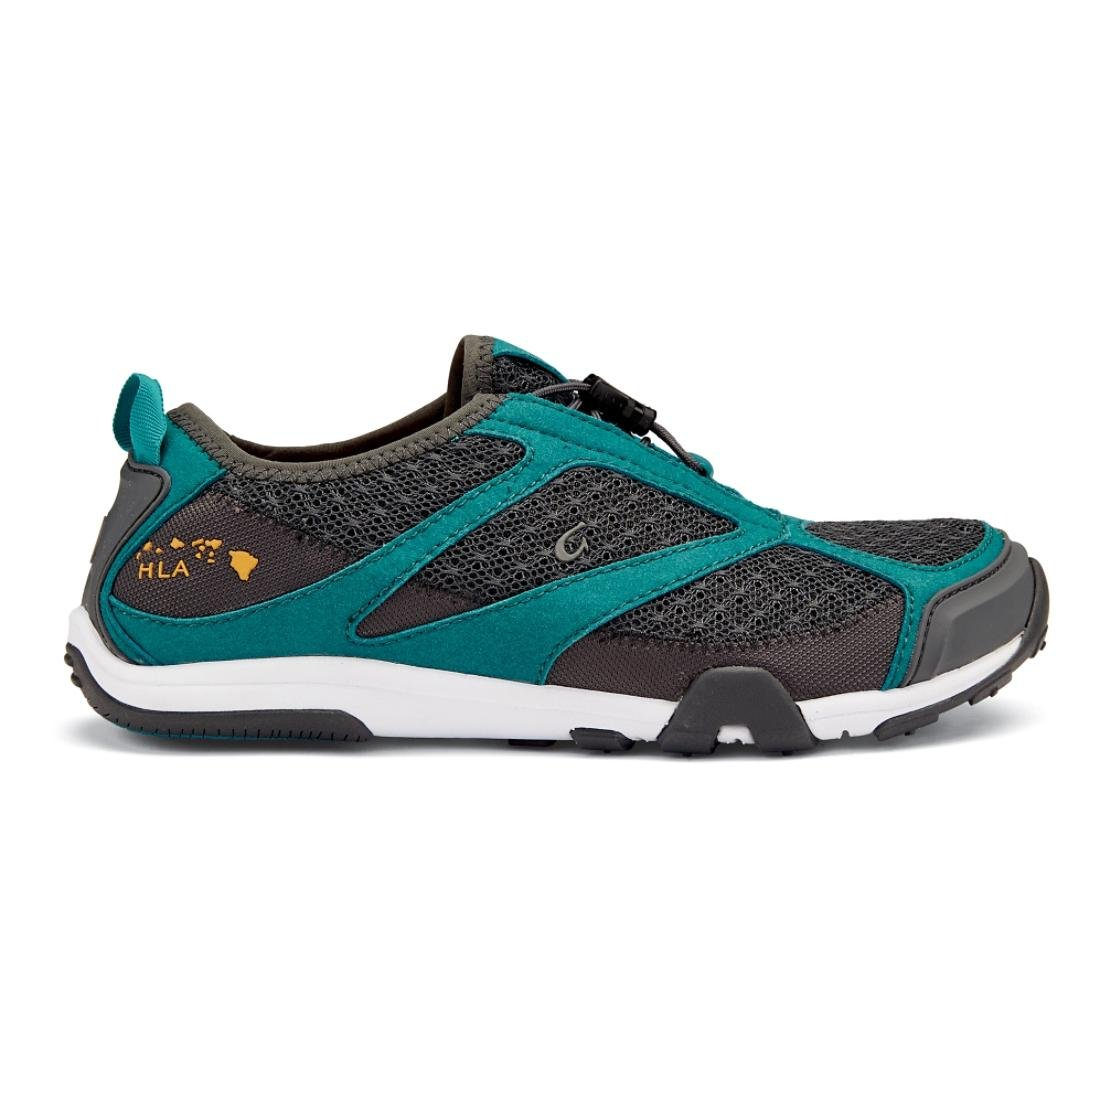 Dark Shadow   Teal 5 B(M) US OluKai Women's 'Eleu Trainer shoes